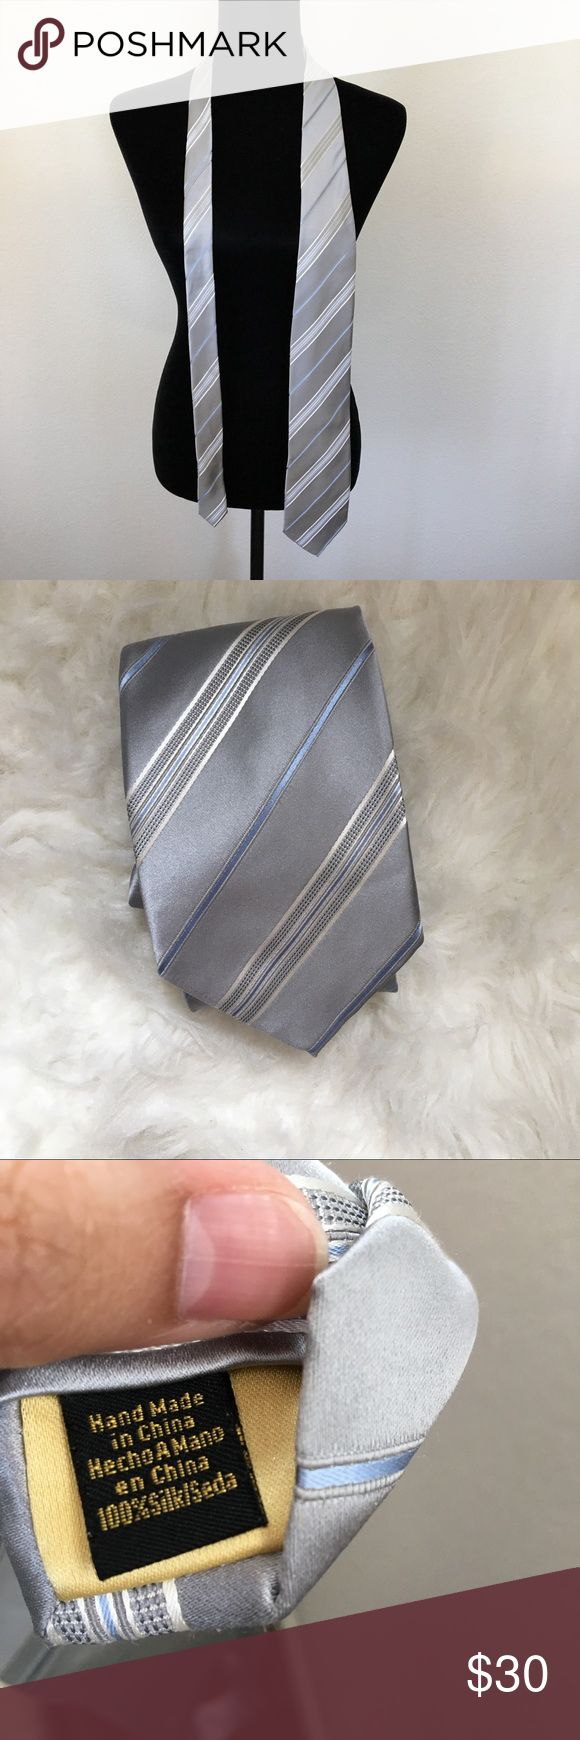 Donald J. Trump Signature Collection Tie Donald J. Trump Tie • Handmade in China • 100% Silk • Colors are Light Blue, Light Gray and White • has Gold little Stamped Plate on back • in Excellent Condition Donald J Trump Accessories Ties